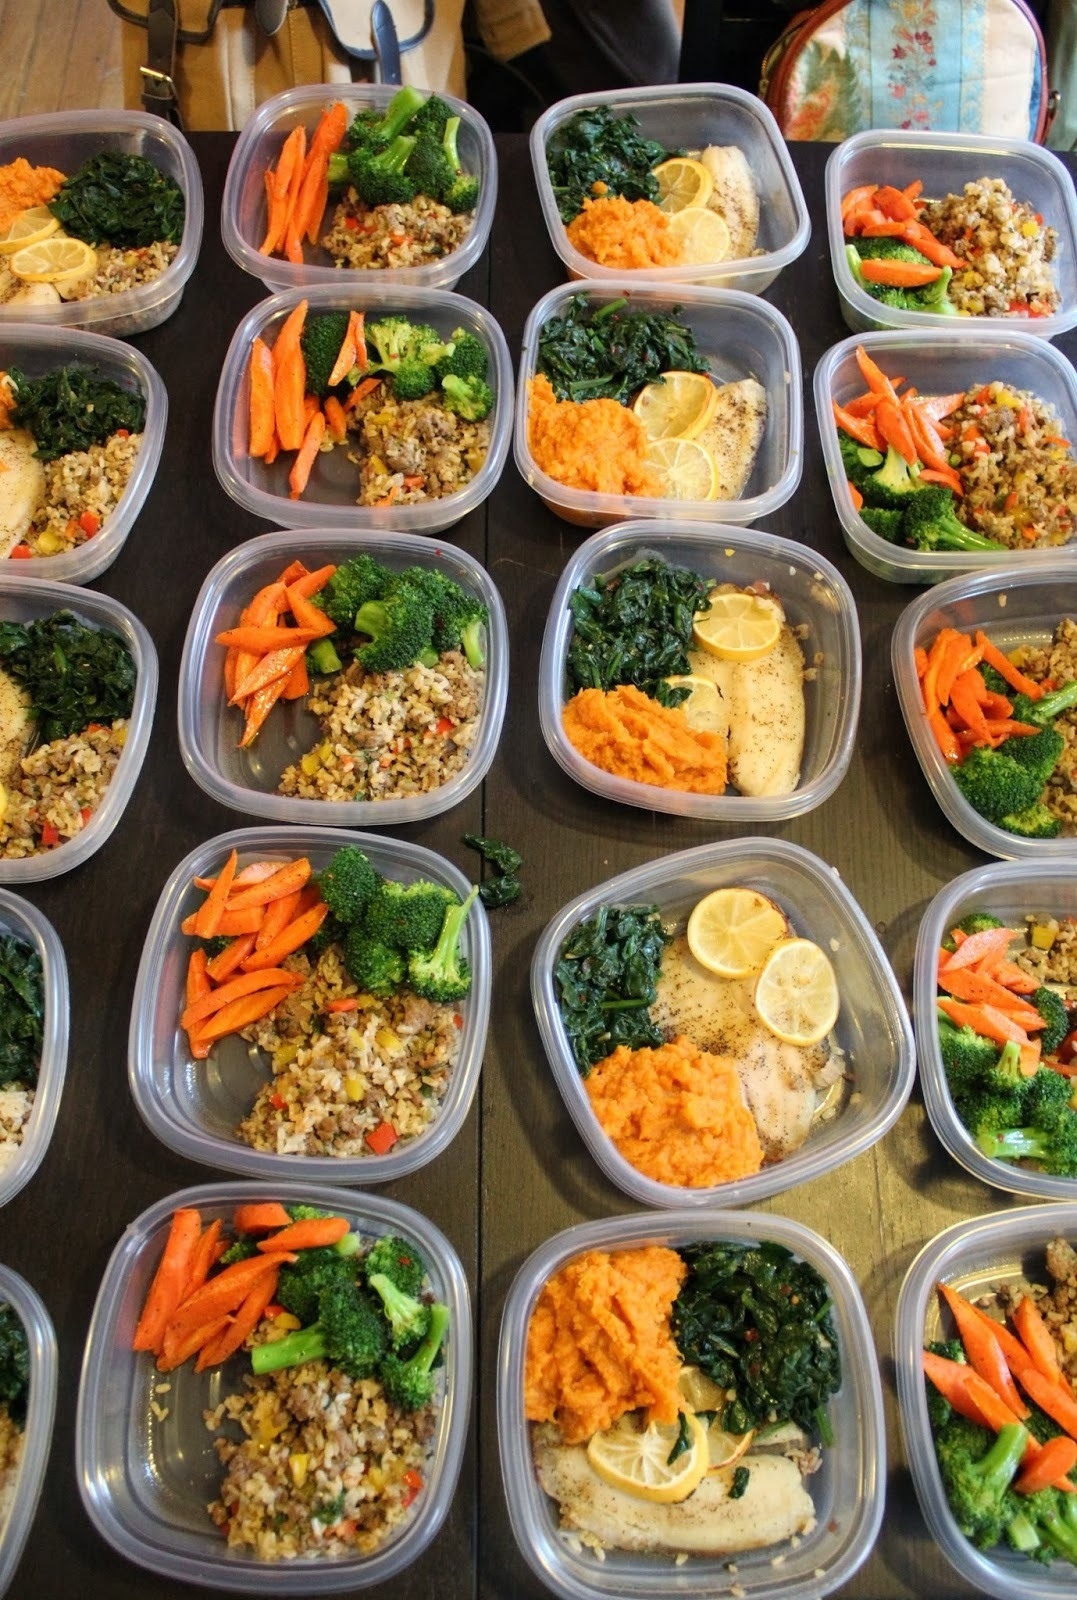 Healthy Weekday Lunches  Healthy Meal Prep Ideas For The WeekWritings and Papers